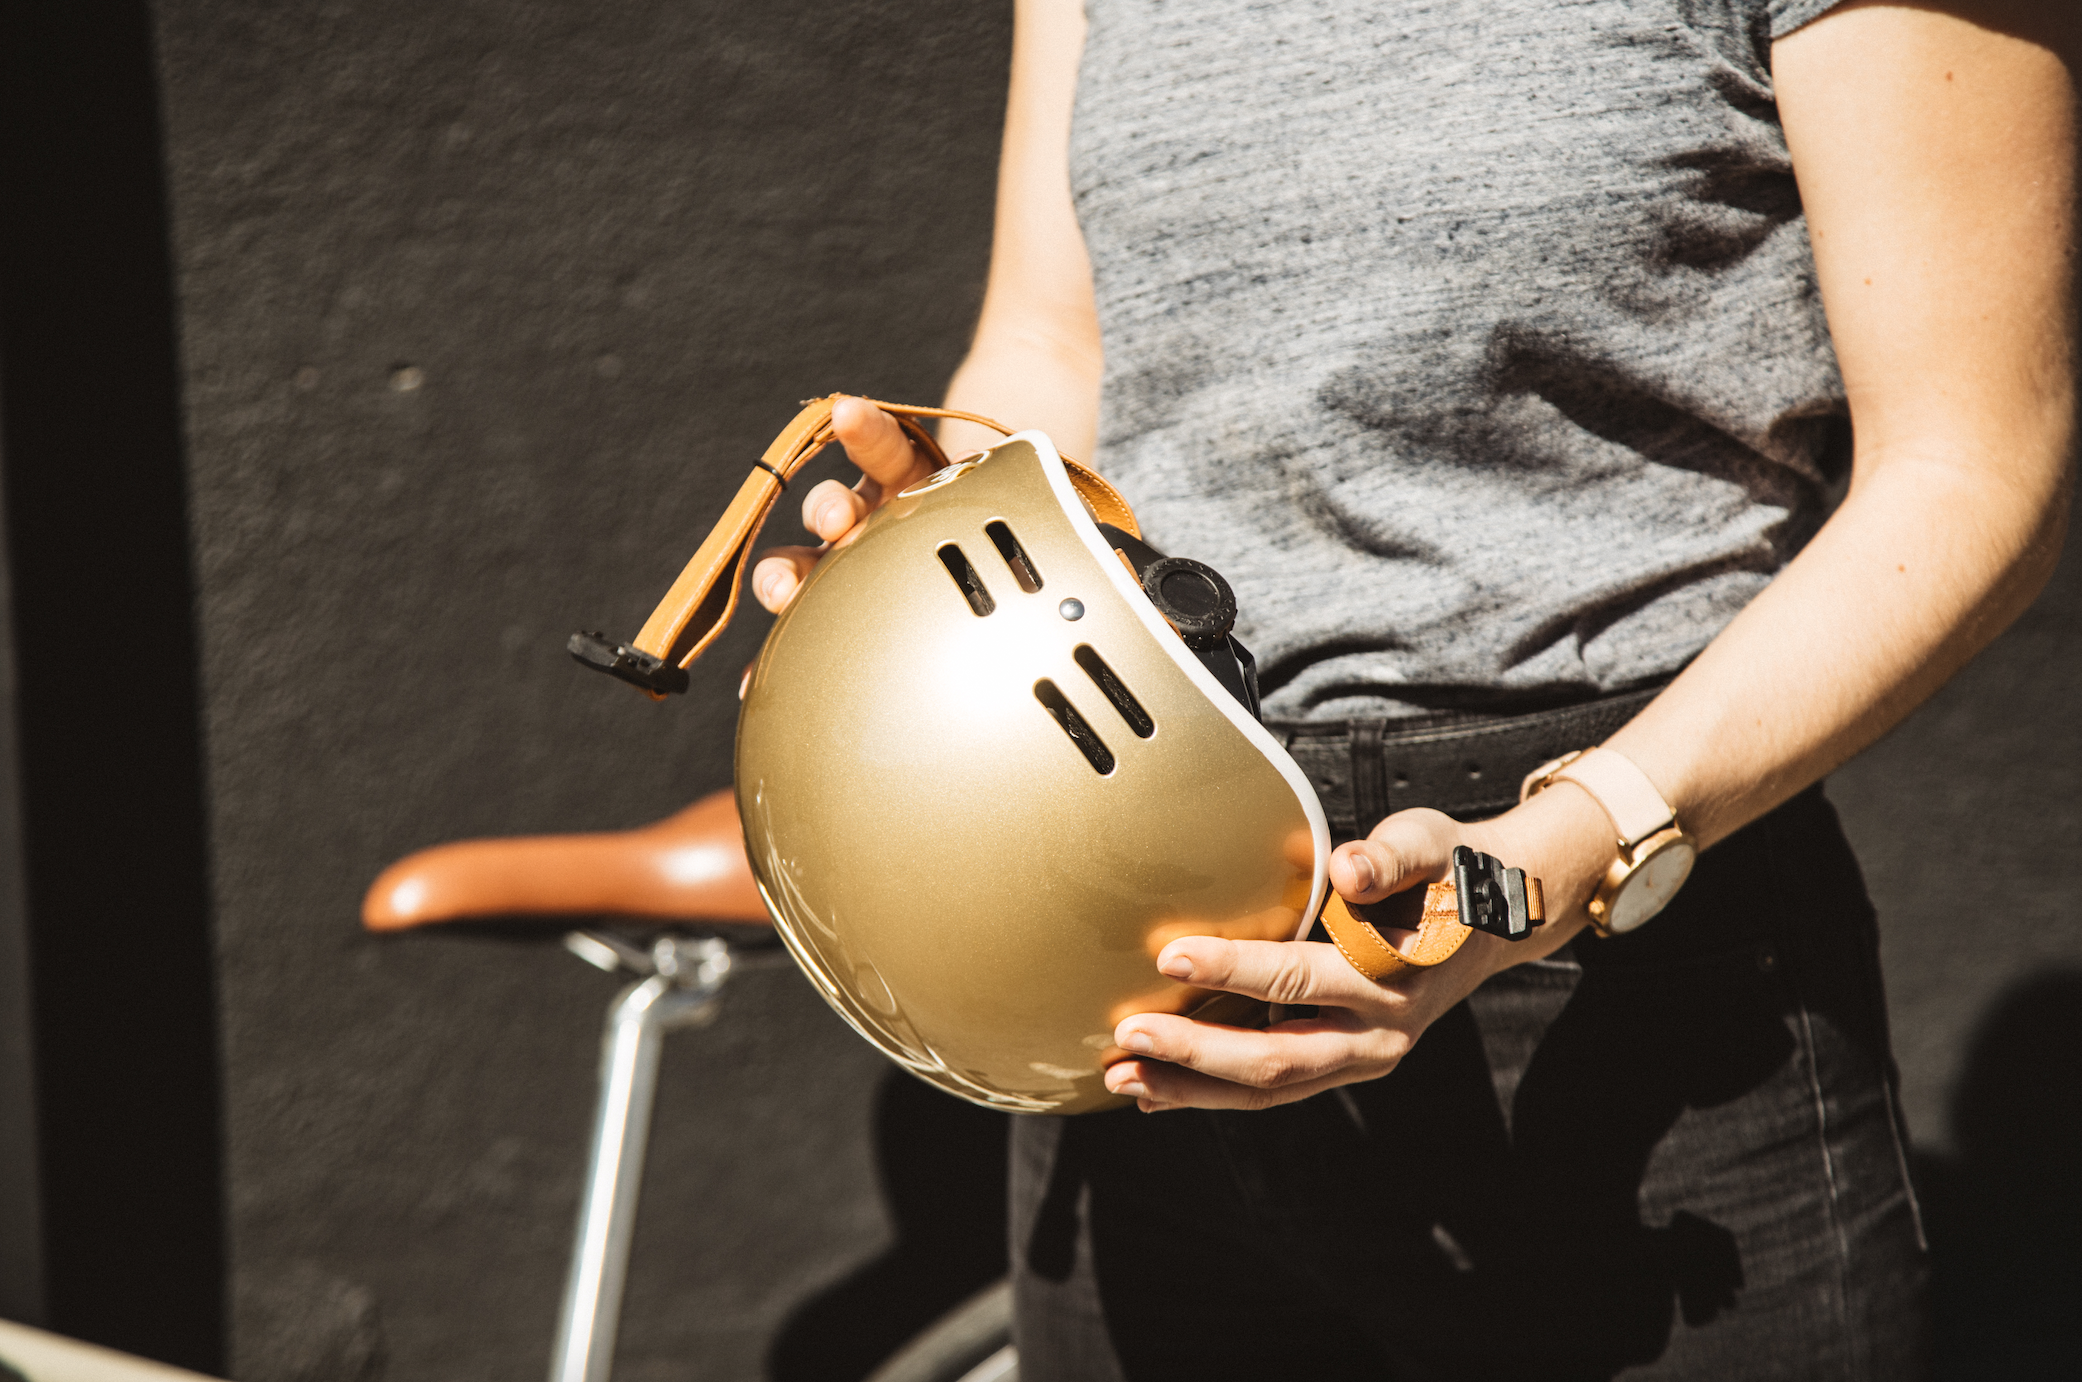 Stay Gold Thousand Heritage Helmet